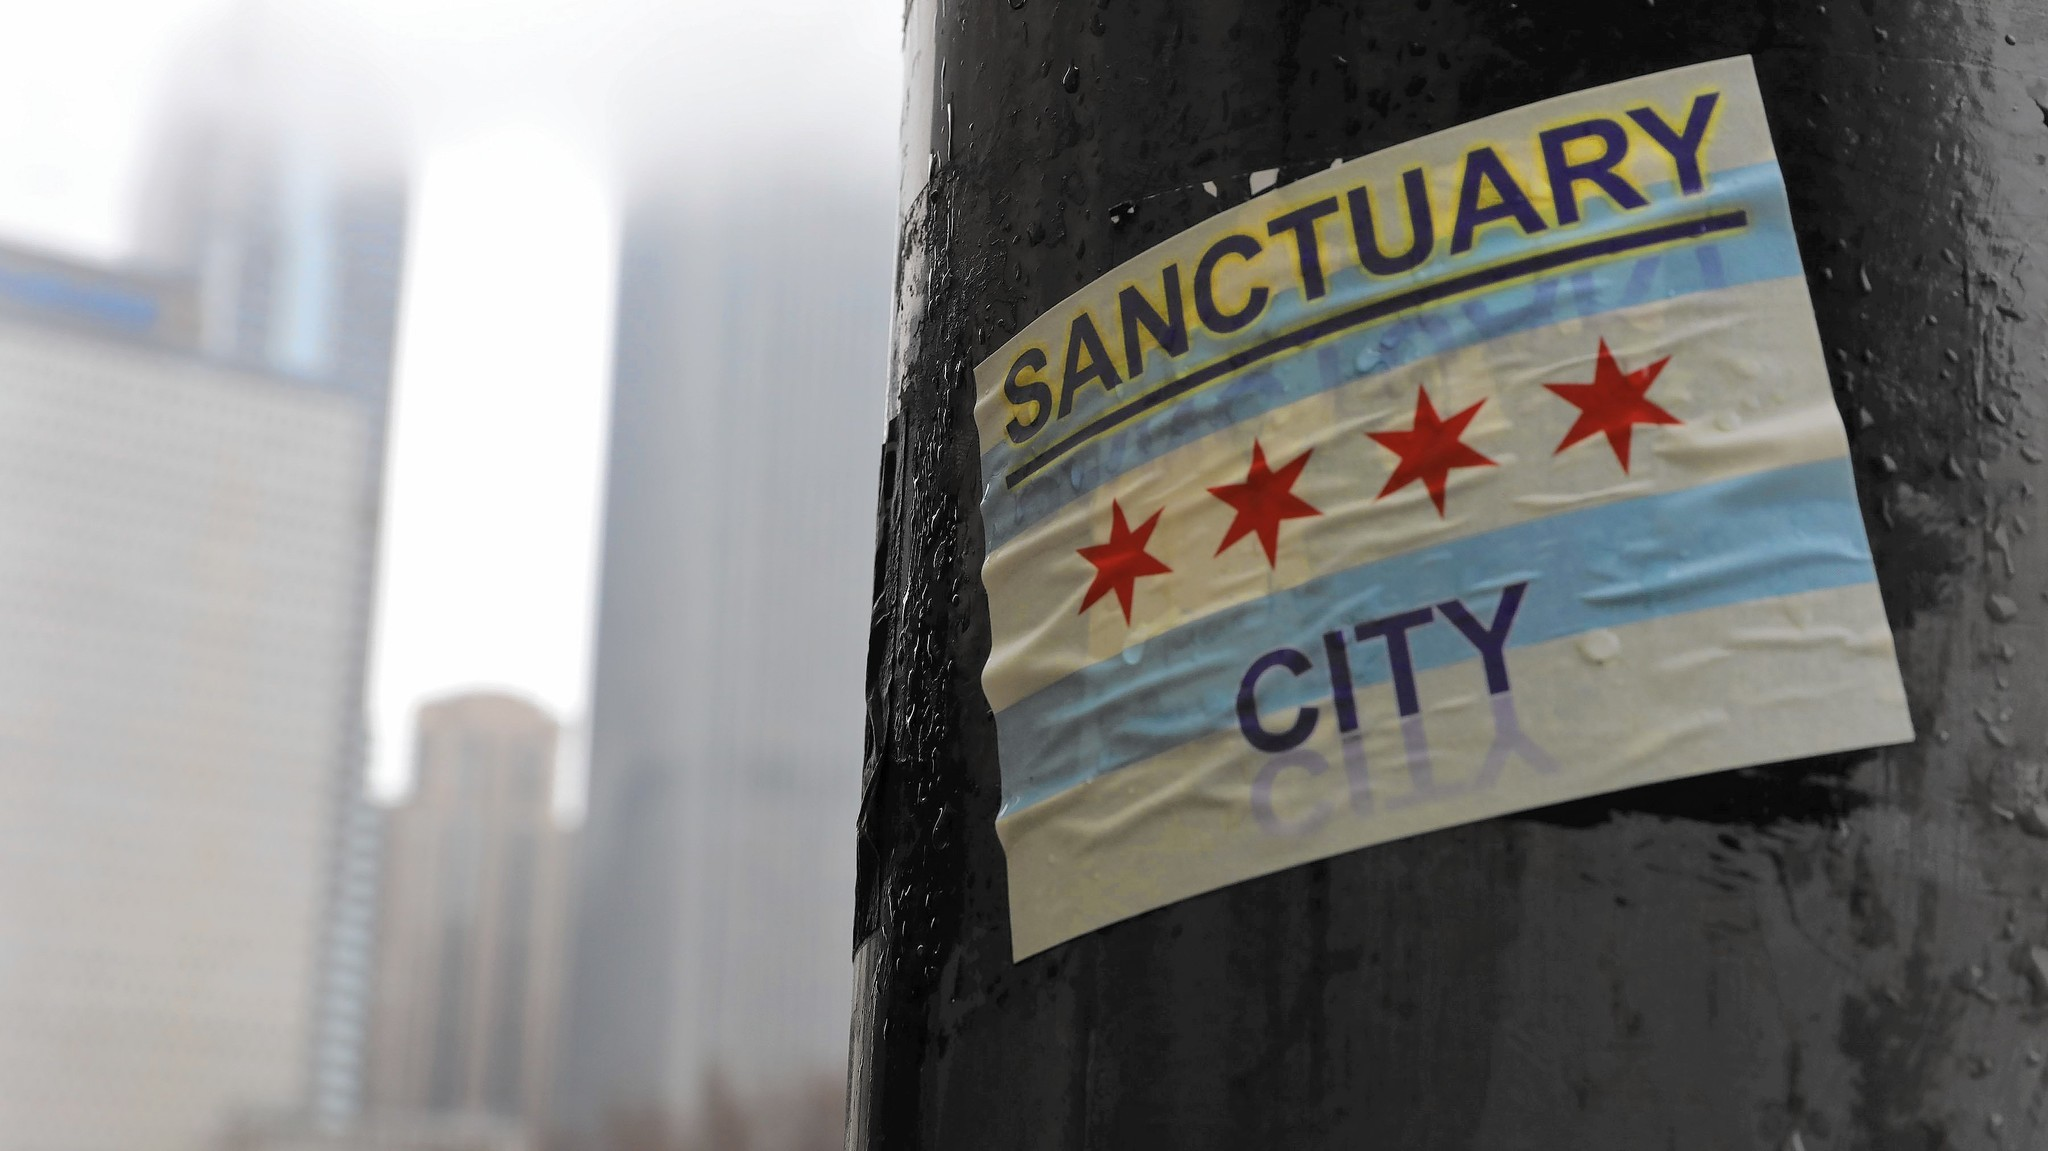 Photo of a sticker of the Chicago flag that says Sanctuary City